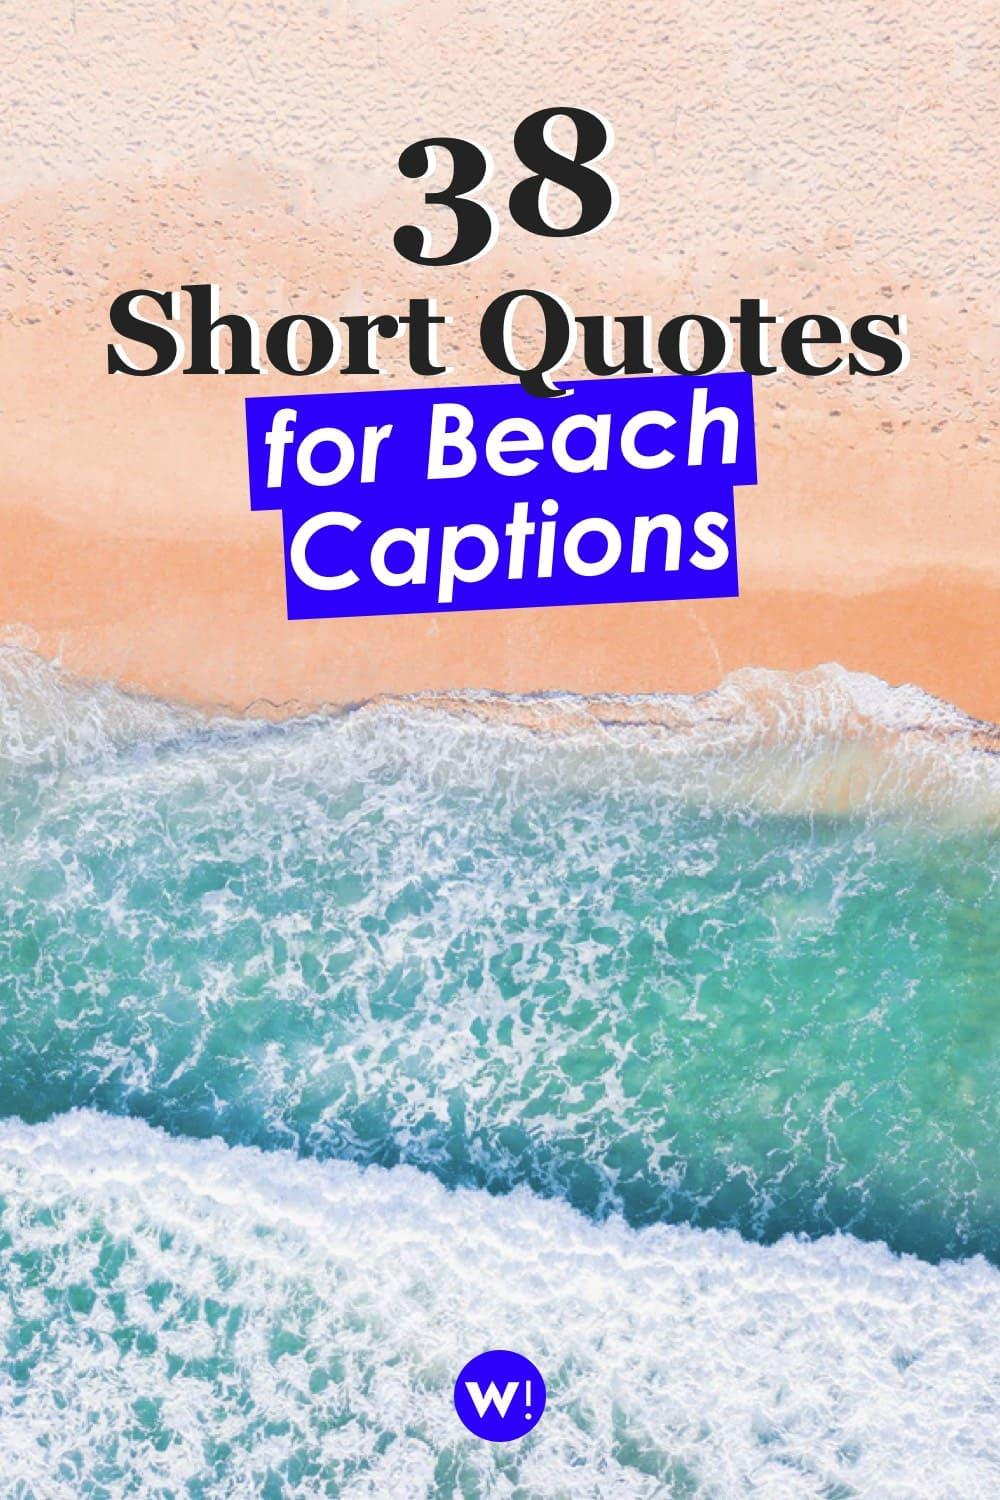 Don't want to bore everyone with a super long caption? Damn right, let's keep it short & sweet! The short beach quotes in this article will all make great short beach captions for Instagram. beach quotes and sayings short |short beach quotes |short ocean quotes |short sea quotes |beach quotes and sayings |beach quotes instagram caption |beach captions for instagram summer